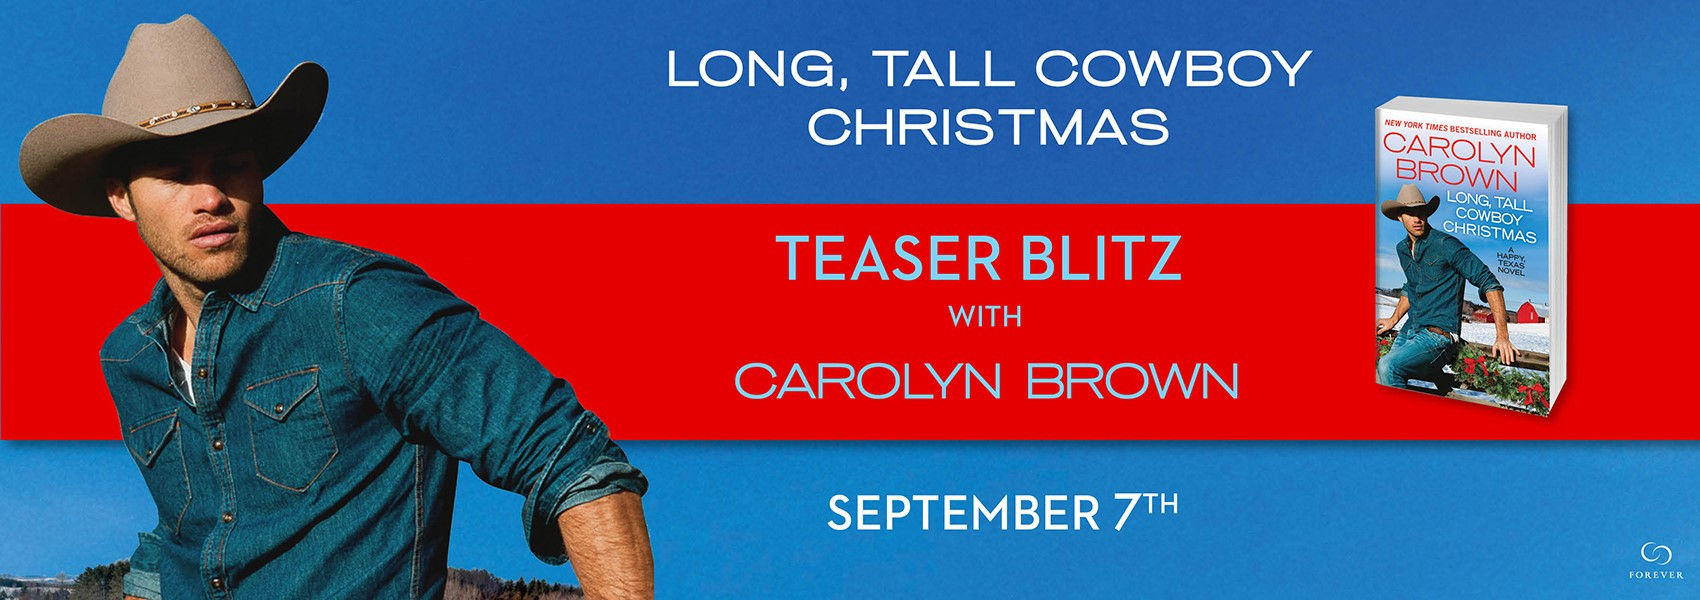 Long, Tall Cowboy Christmas by Caroline Brown